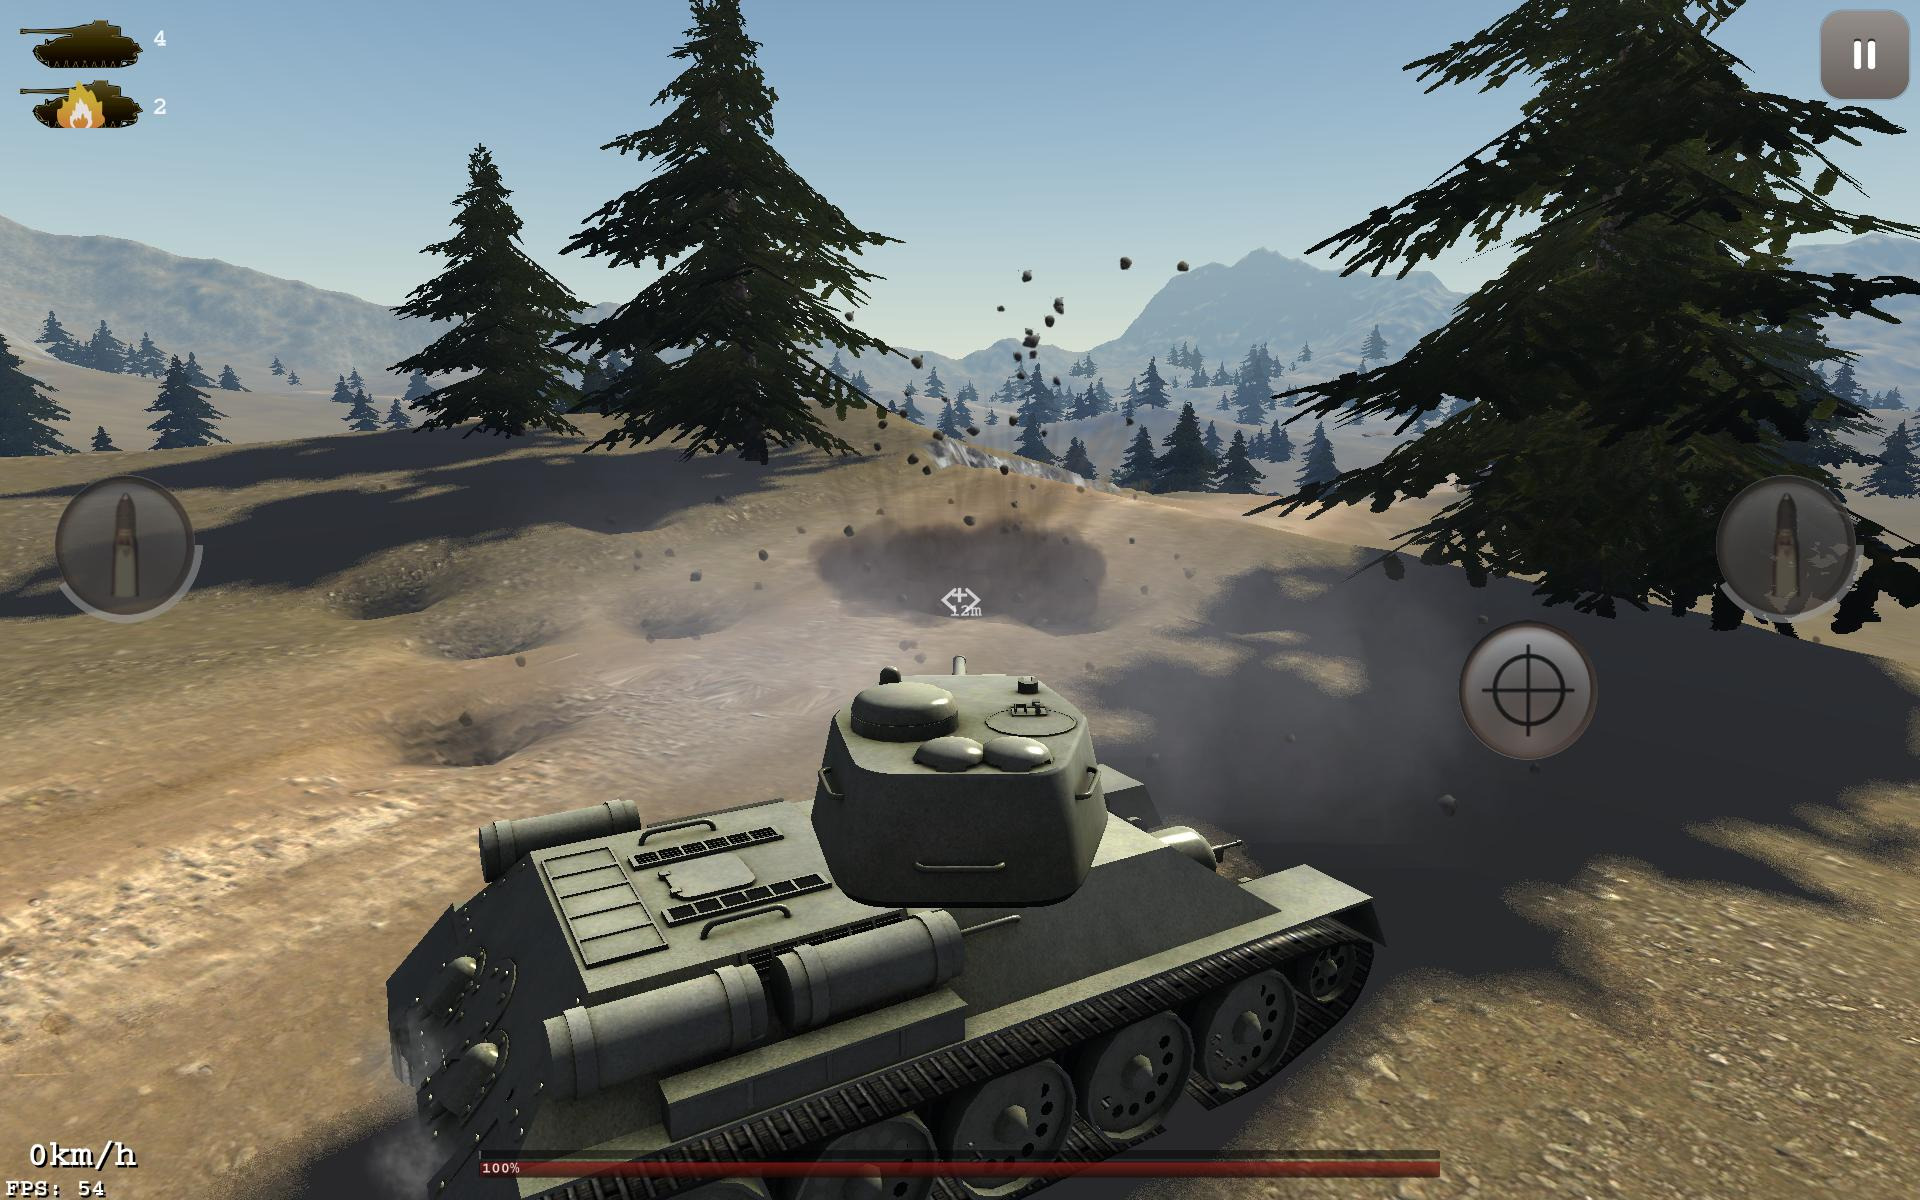 Archaic: Tank Warfare 4.03 Screenshot 11